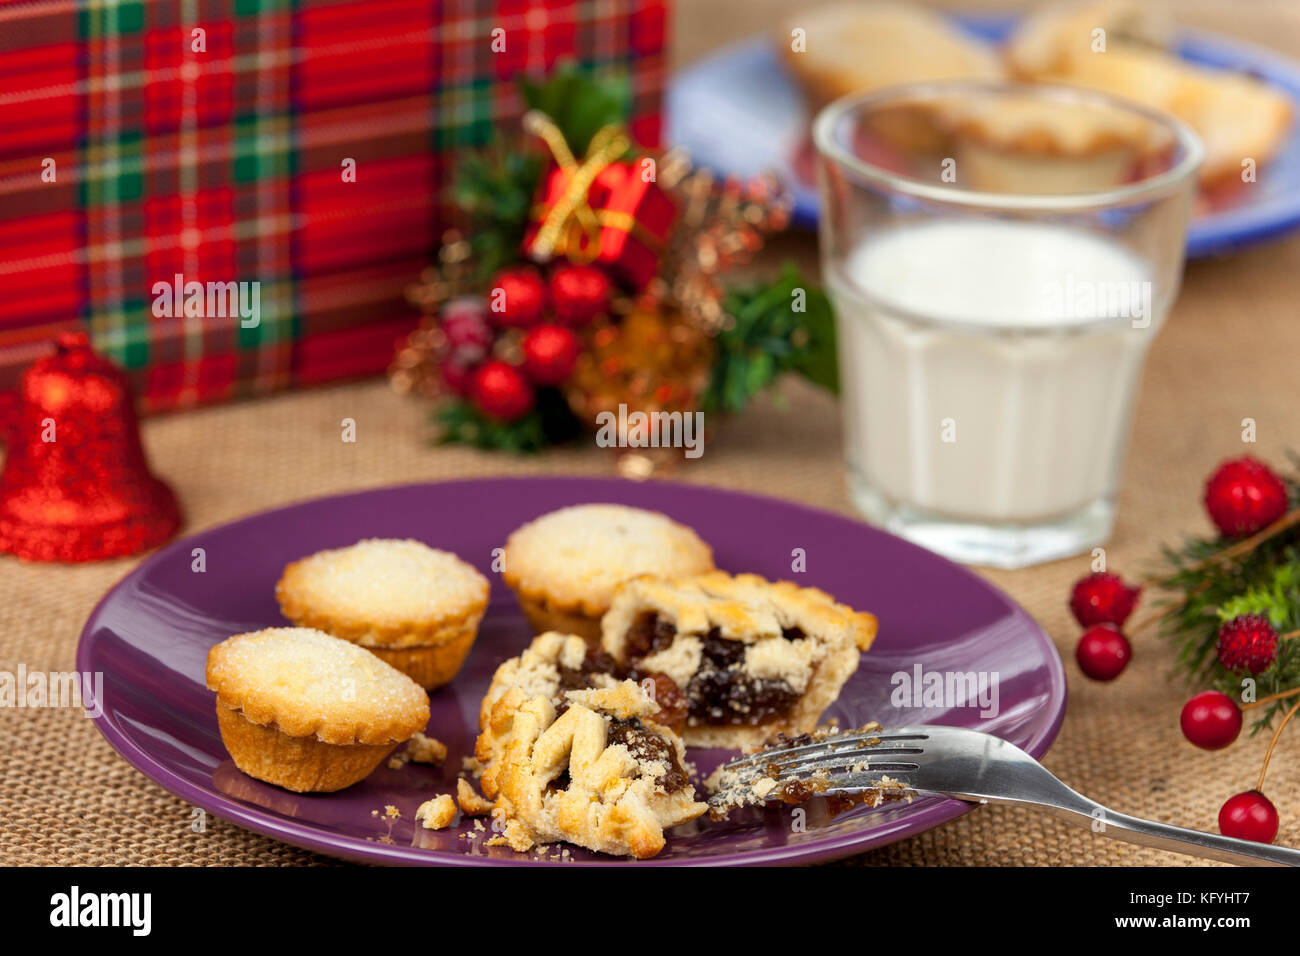 Broken mince pie on a purple plate with a glass of milk on a christmas table with a hessian tablecloth - Stock Image